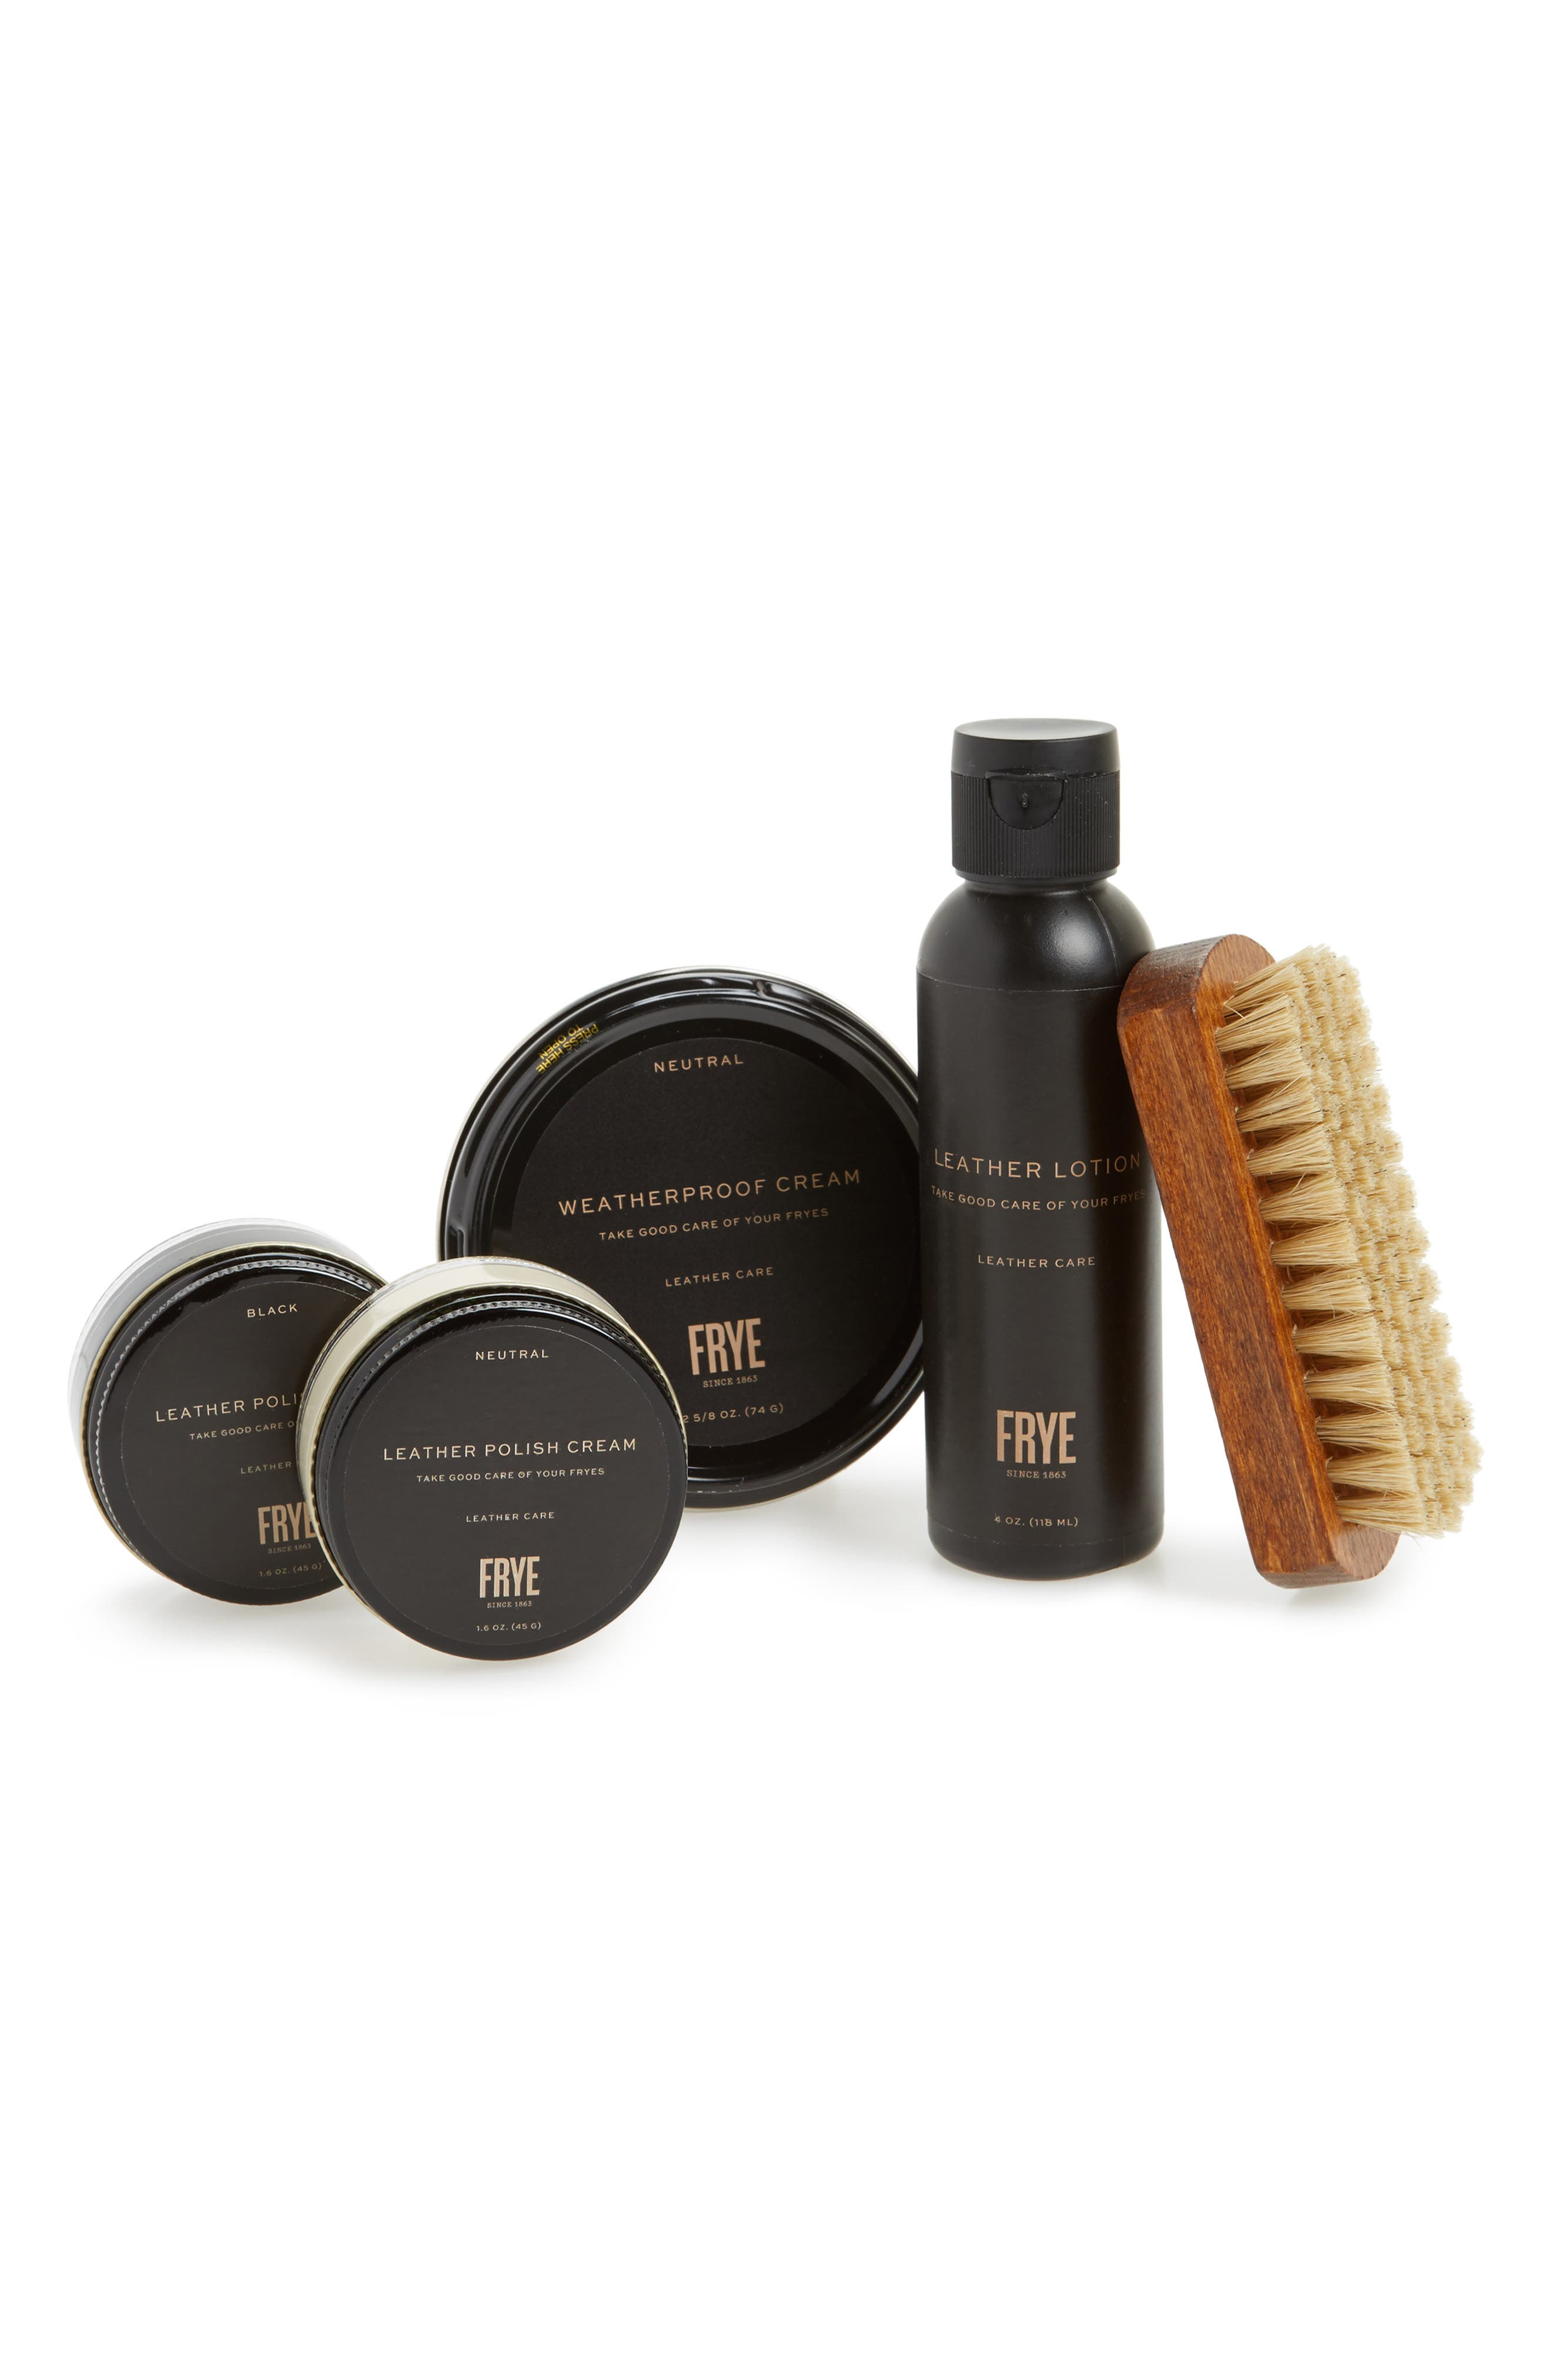 Deluxe Leather Care Kit,                             Main thumbnail 1, color,                             Neutral